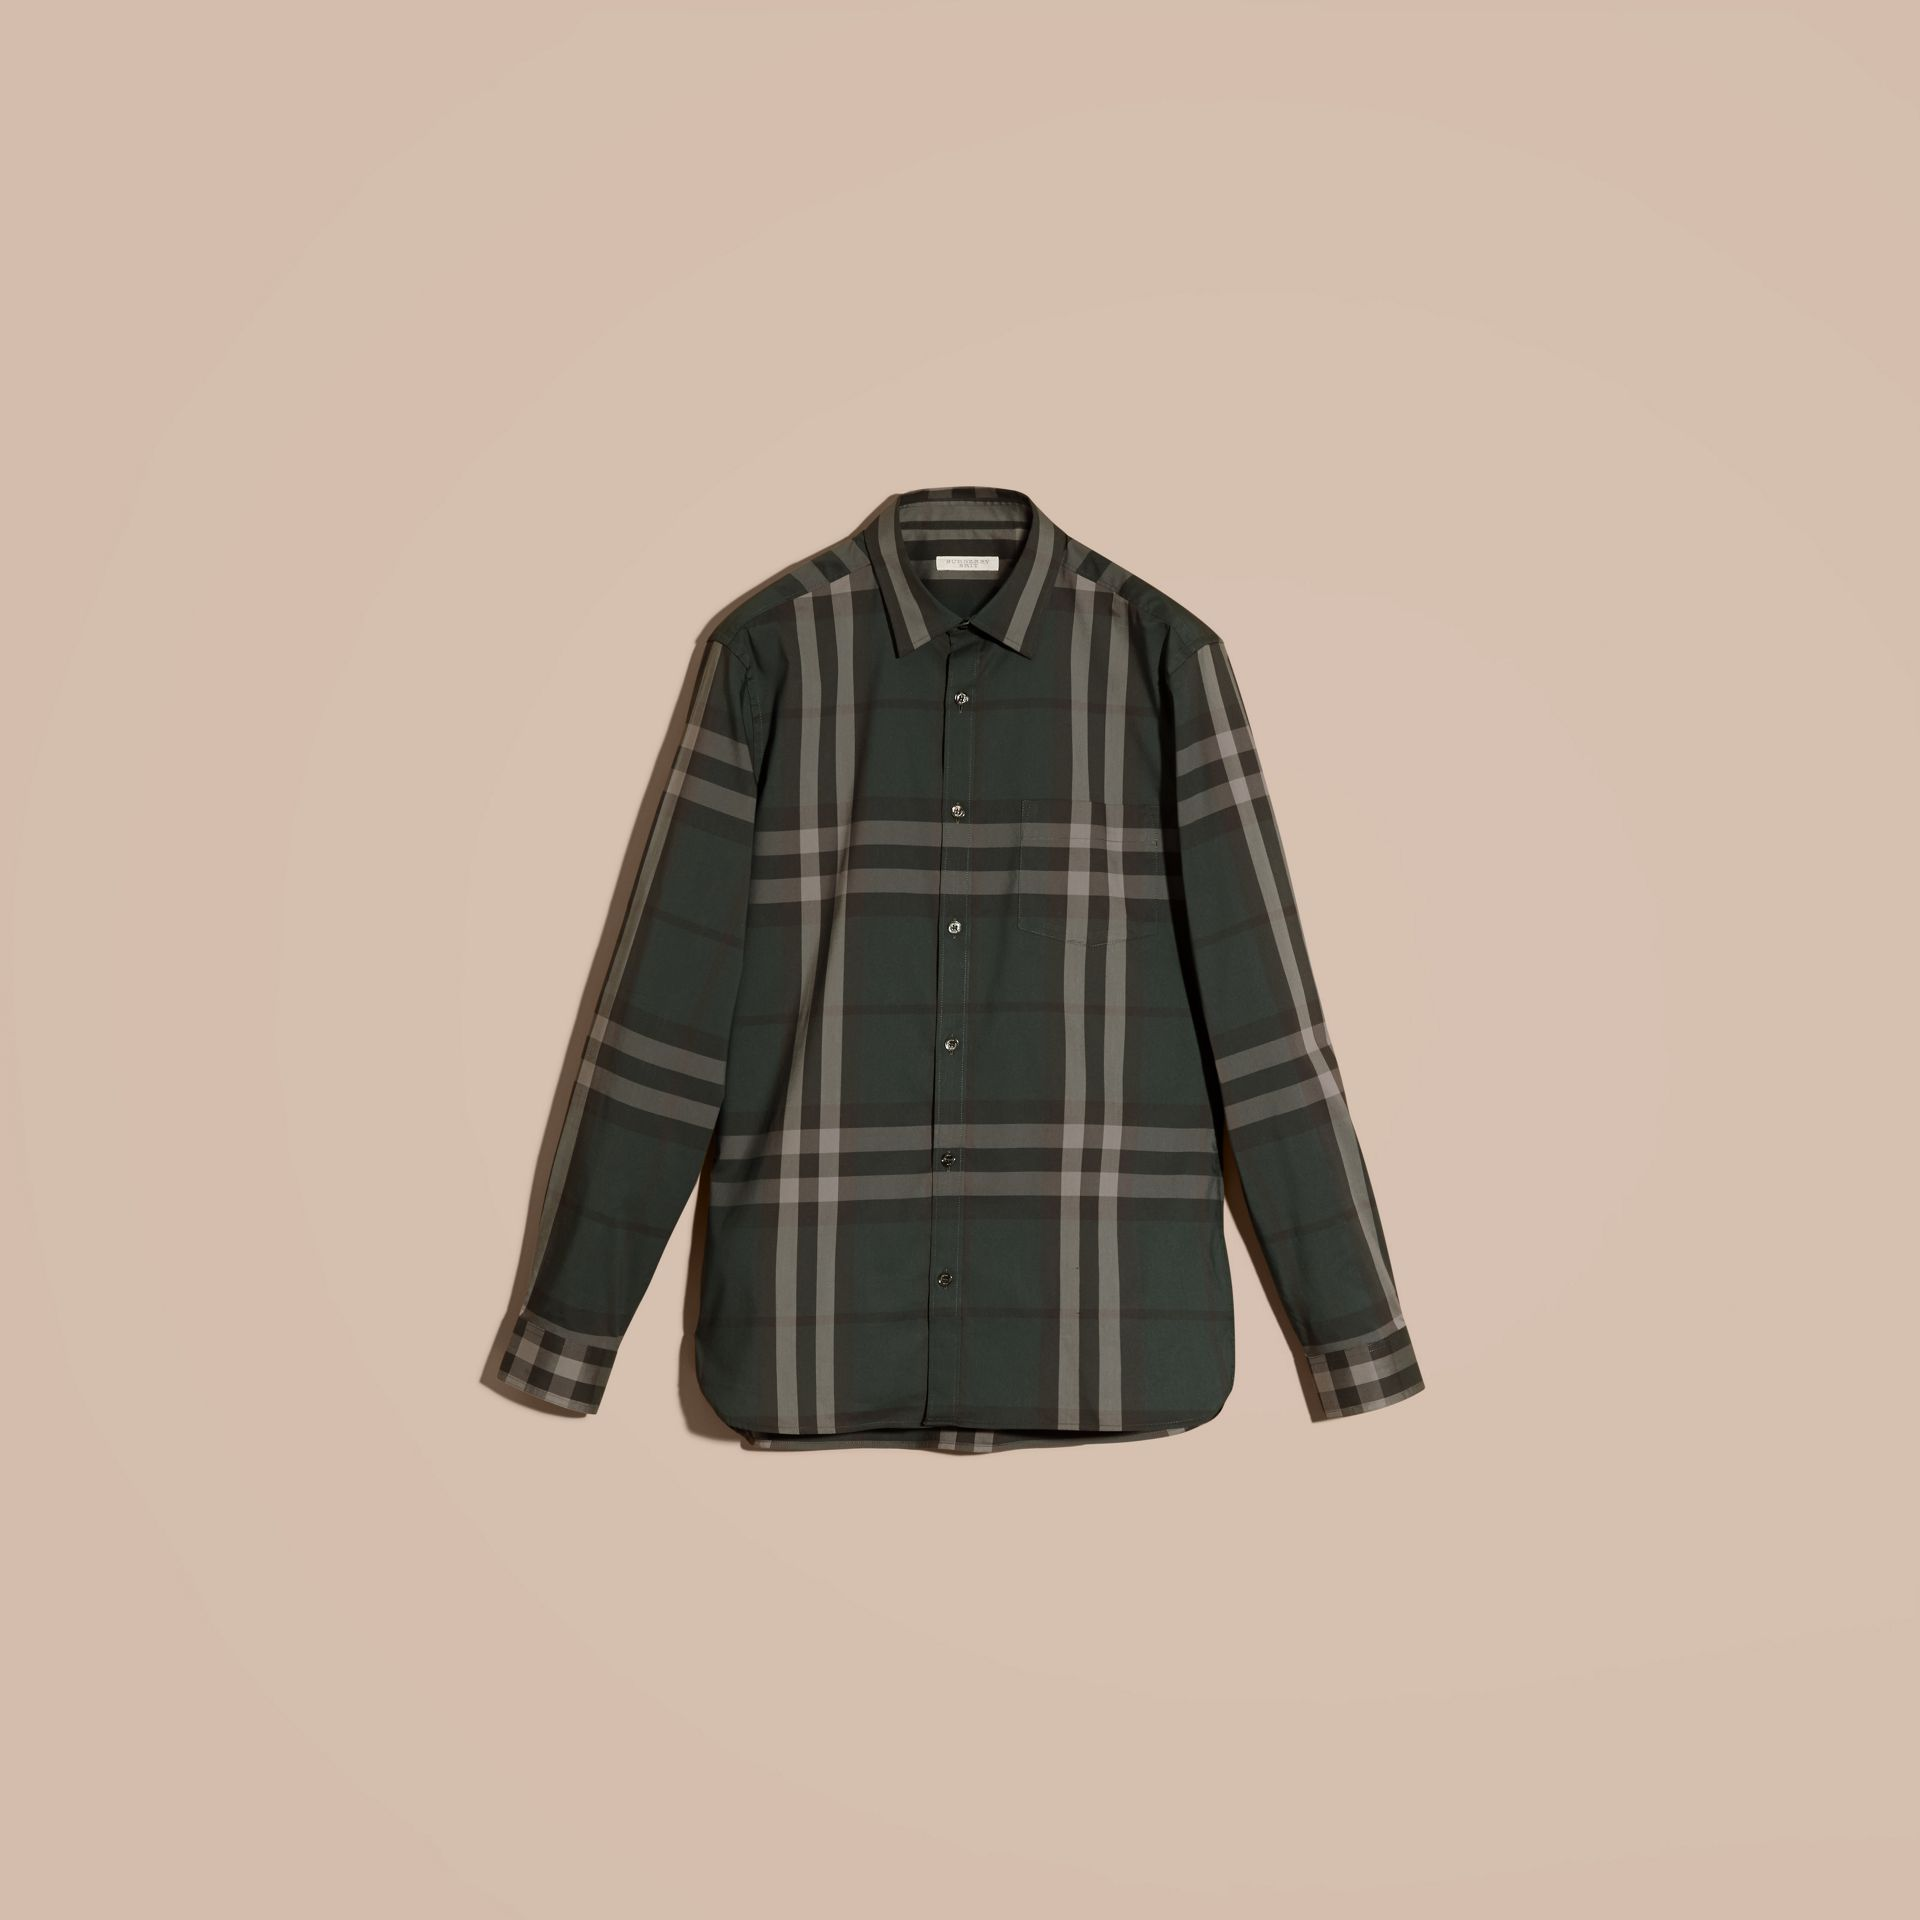 Racing green Check Stretch Cotton Shirt Racing Green - gallery image 4